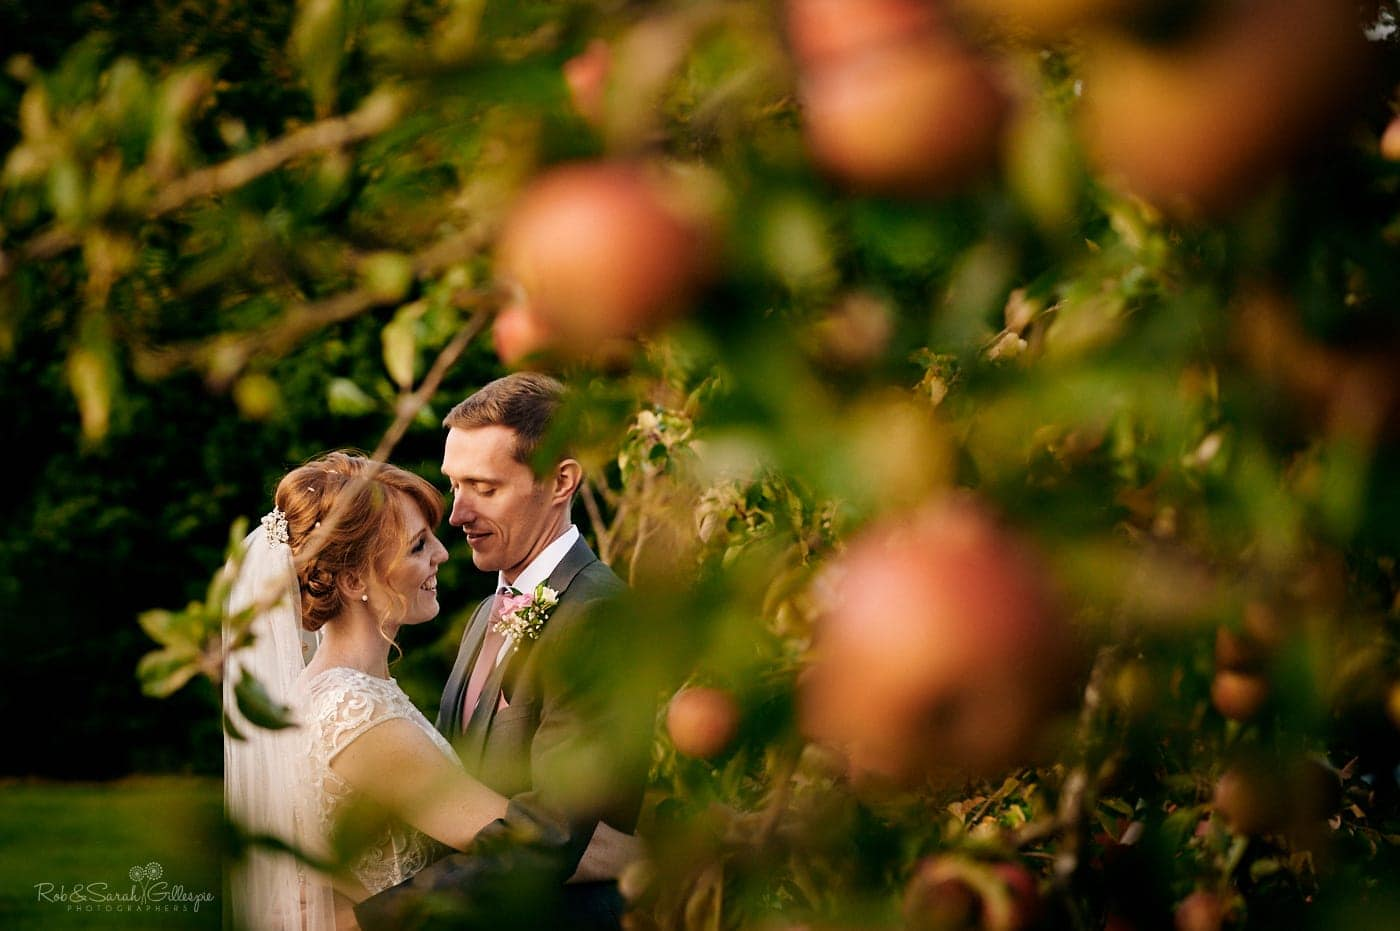 Bride and groom surrounded by apple trees